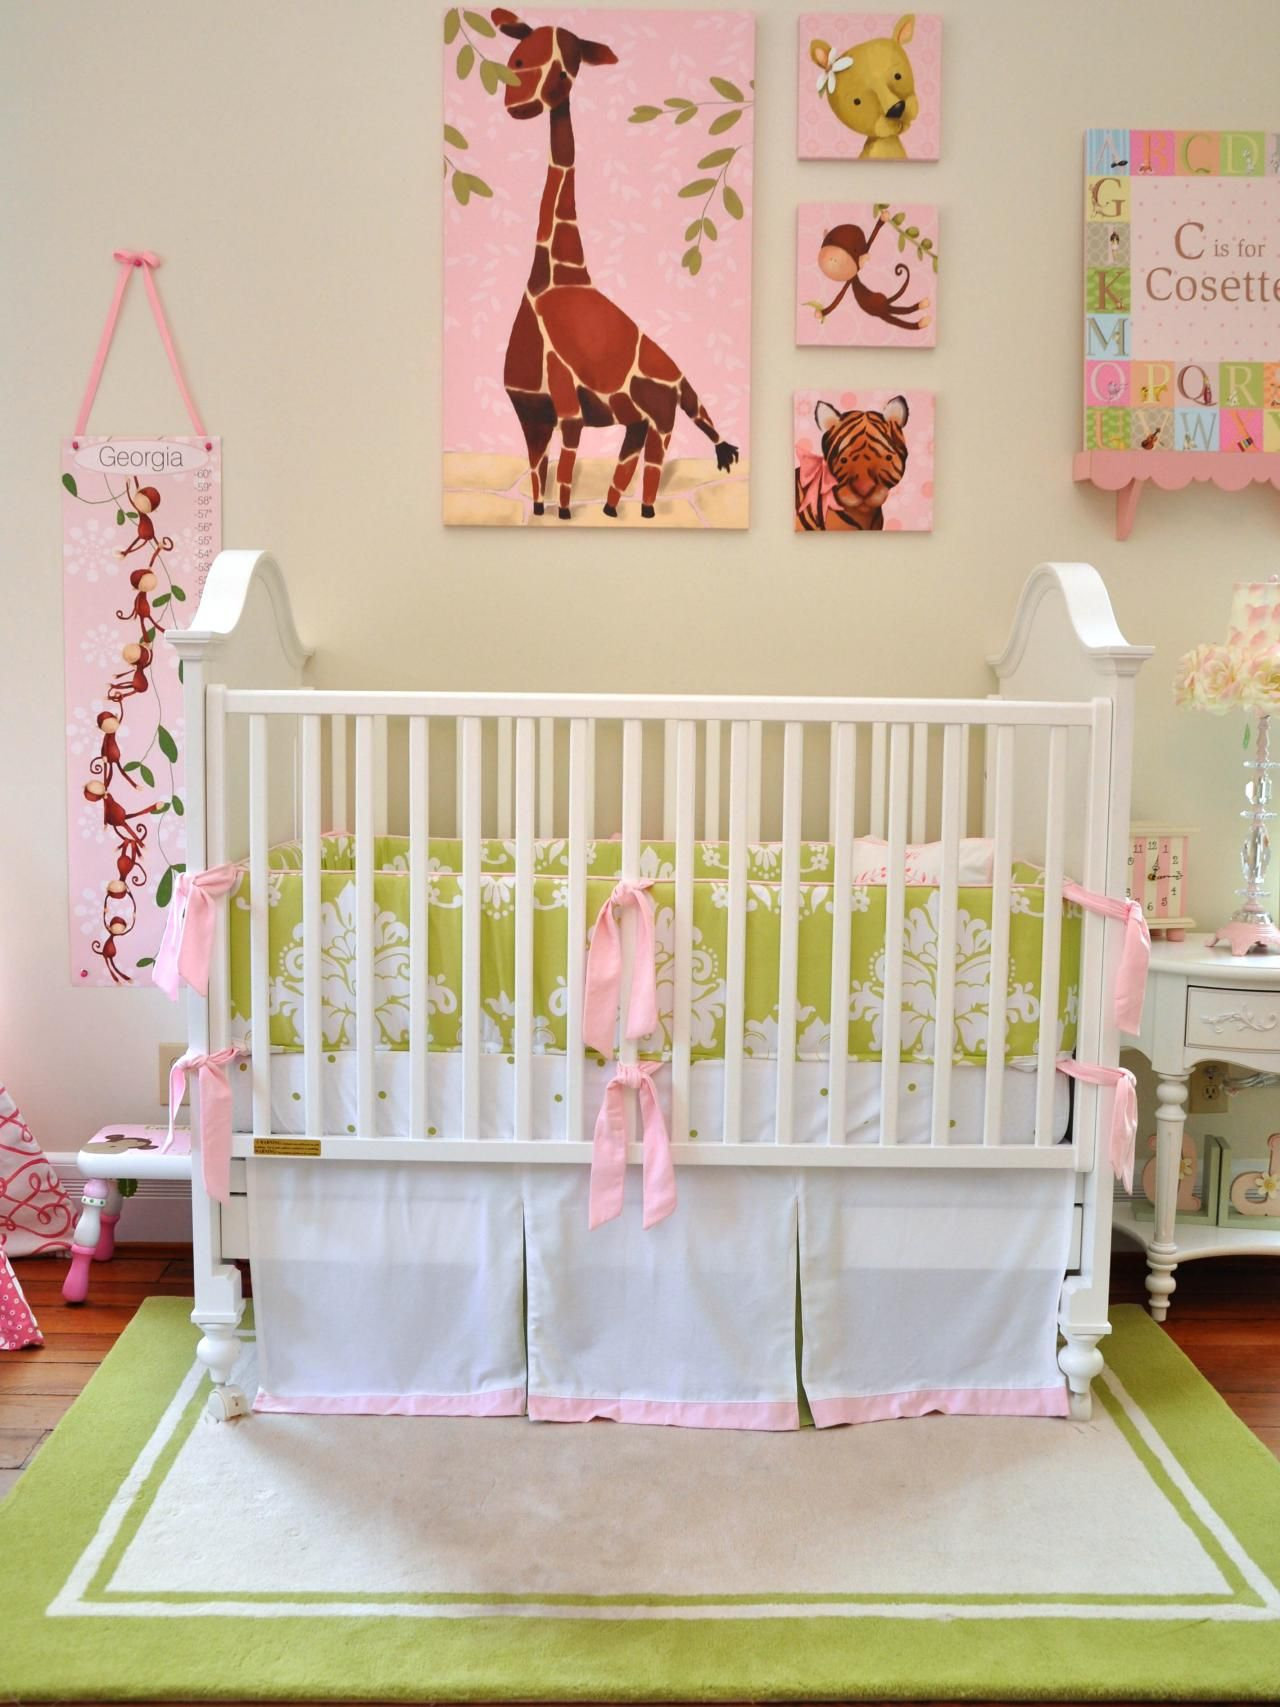 The Jungle Theme Nursery With A Feminine Twist Includes Pink Animal Print Wall Art Green And White Damask Crib Per Ties Coordinates